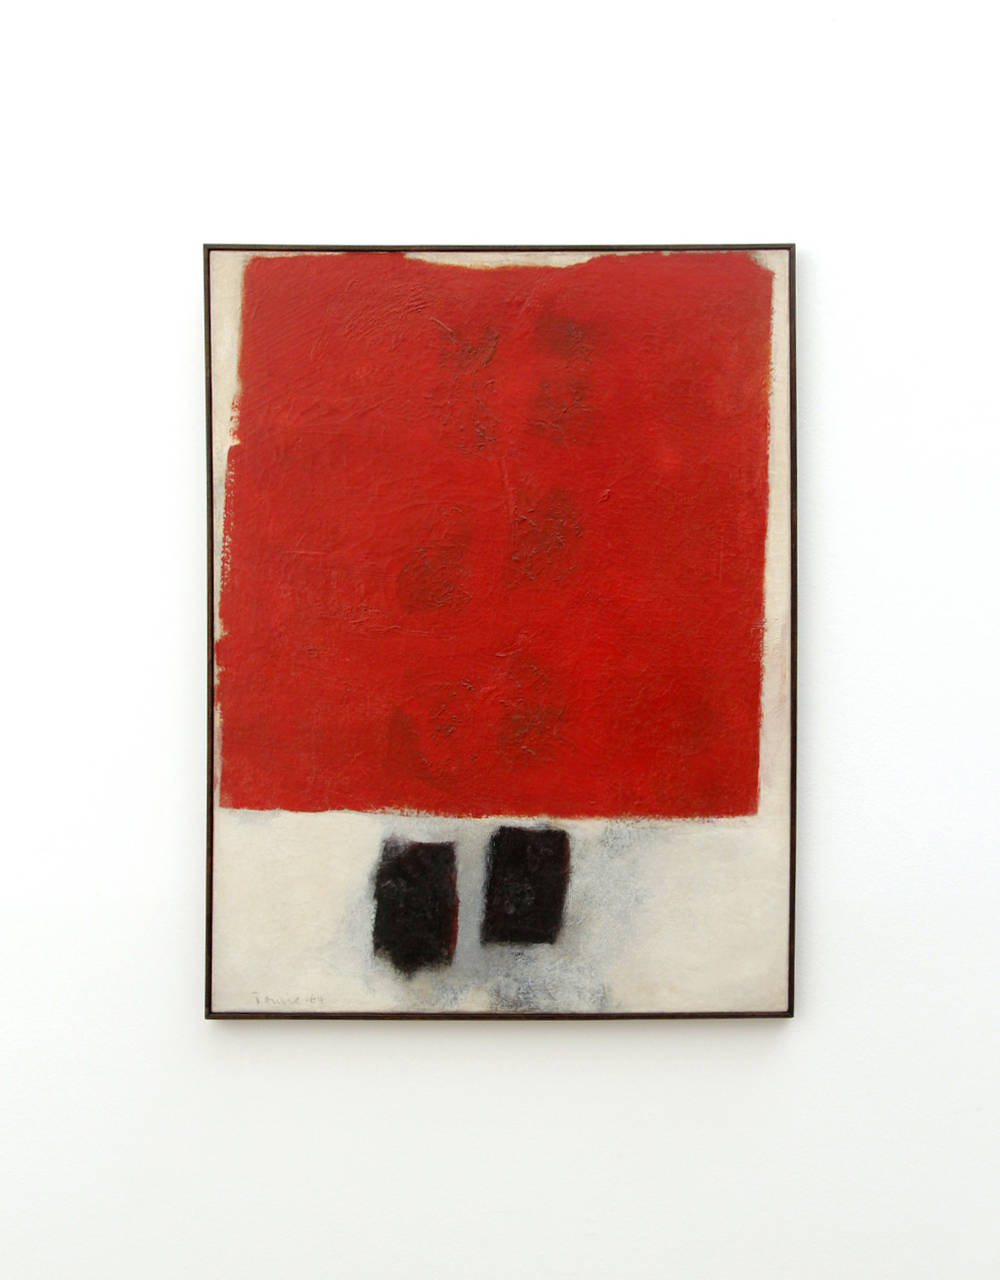 Tomie Ohtake, Untitled, 1964. Oil on canvas 25.8 x 19.9 in/65,5 x 50,5 cm. Courtesy of the artist and Galeria Nara Roesler